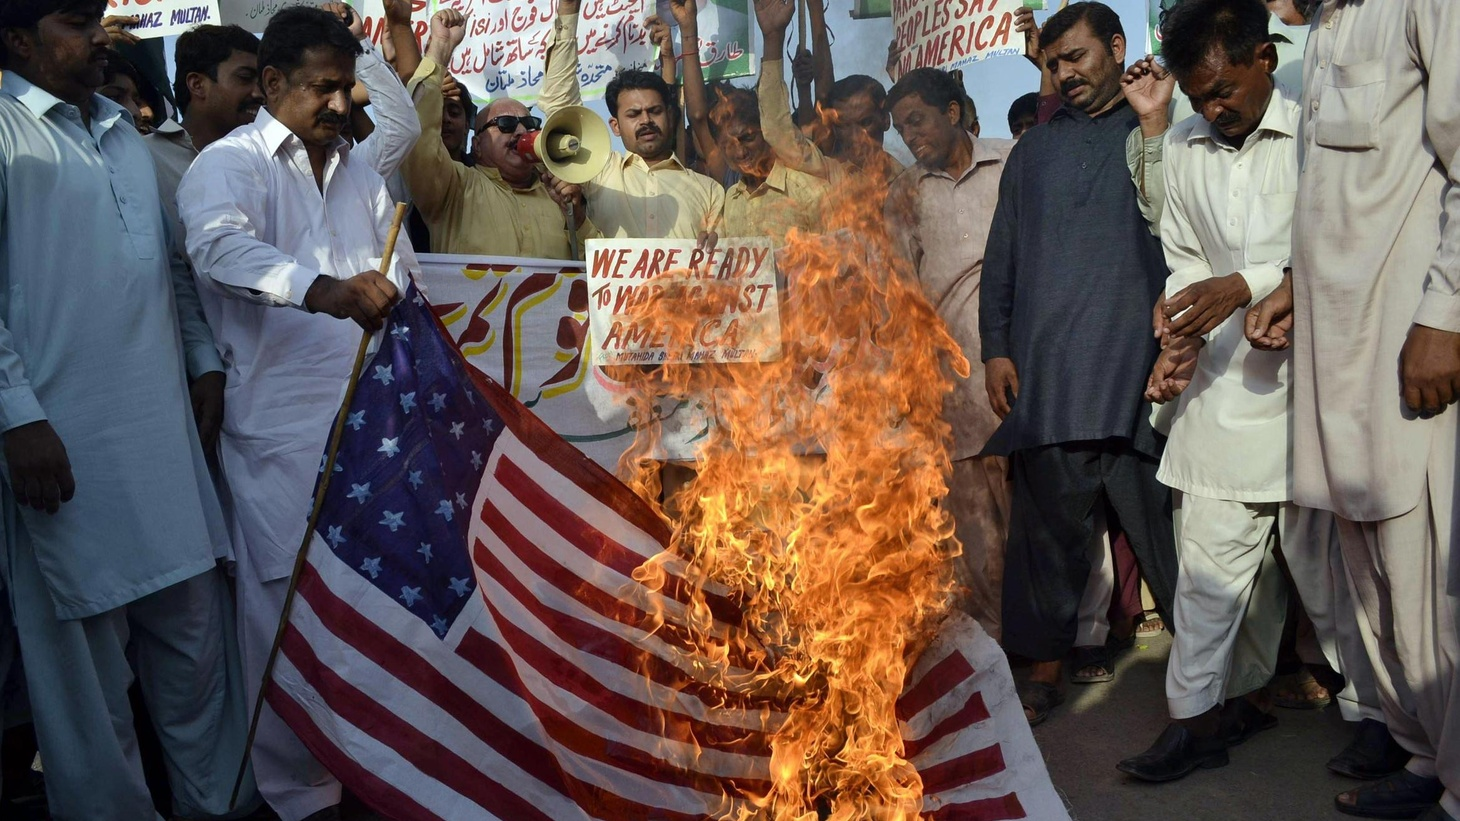 As the US prepares to withdraw from Afghanistan, does it have bigger problems with Pakistan? Is the US threatening military action that could have unintended consequences?